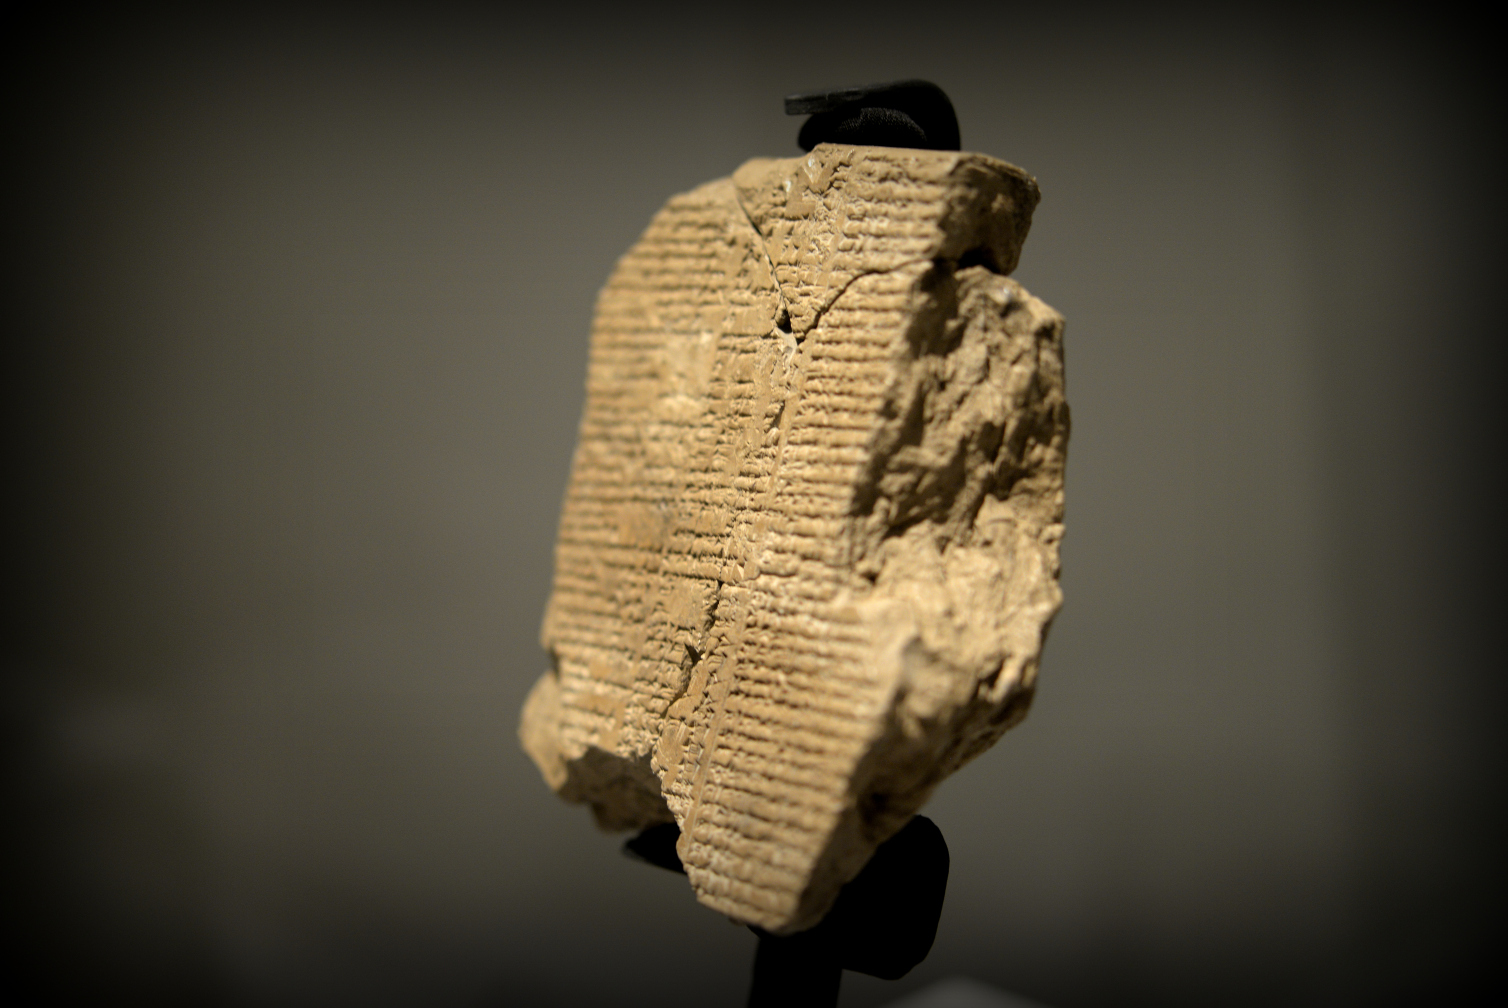 new fragment found of gilgamesh tablet v jason m h gaines a newly discovered tablet v of the epic of gilgamesh the left half of the